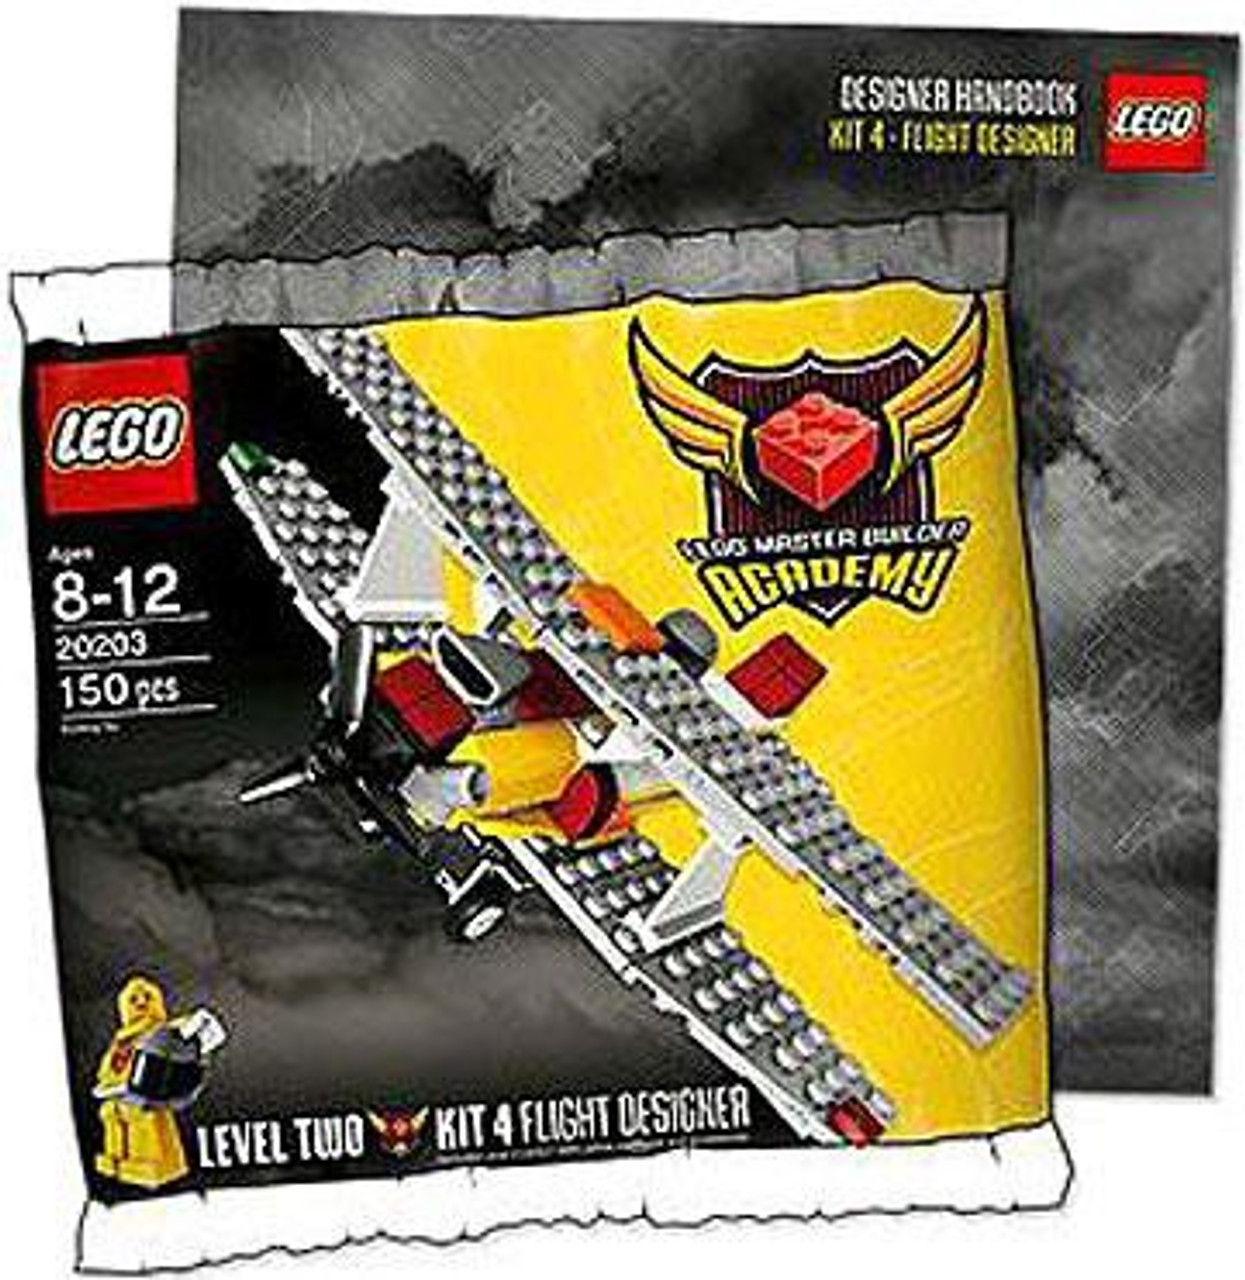 LEGO Master Builder Academy MBA Flight Designer Mini Set #20203 [Bagged]